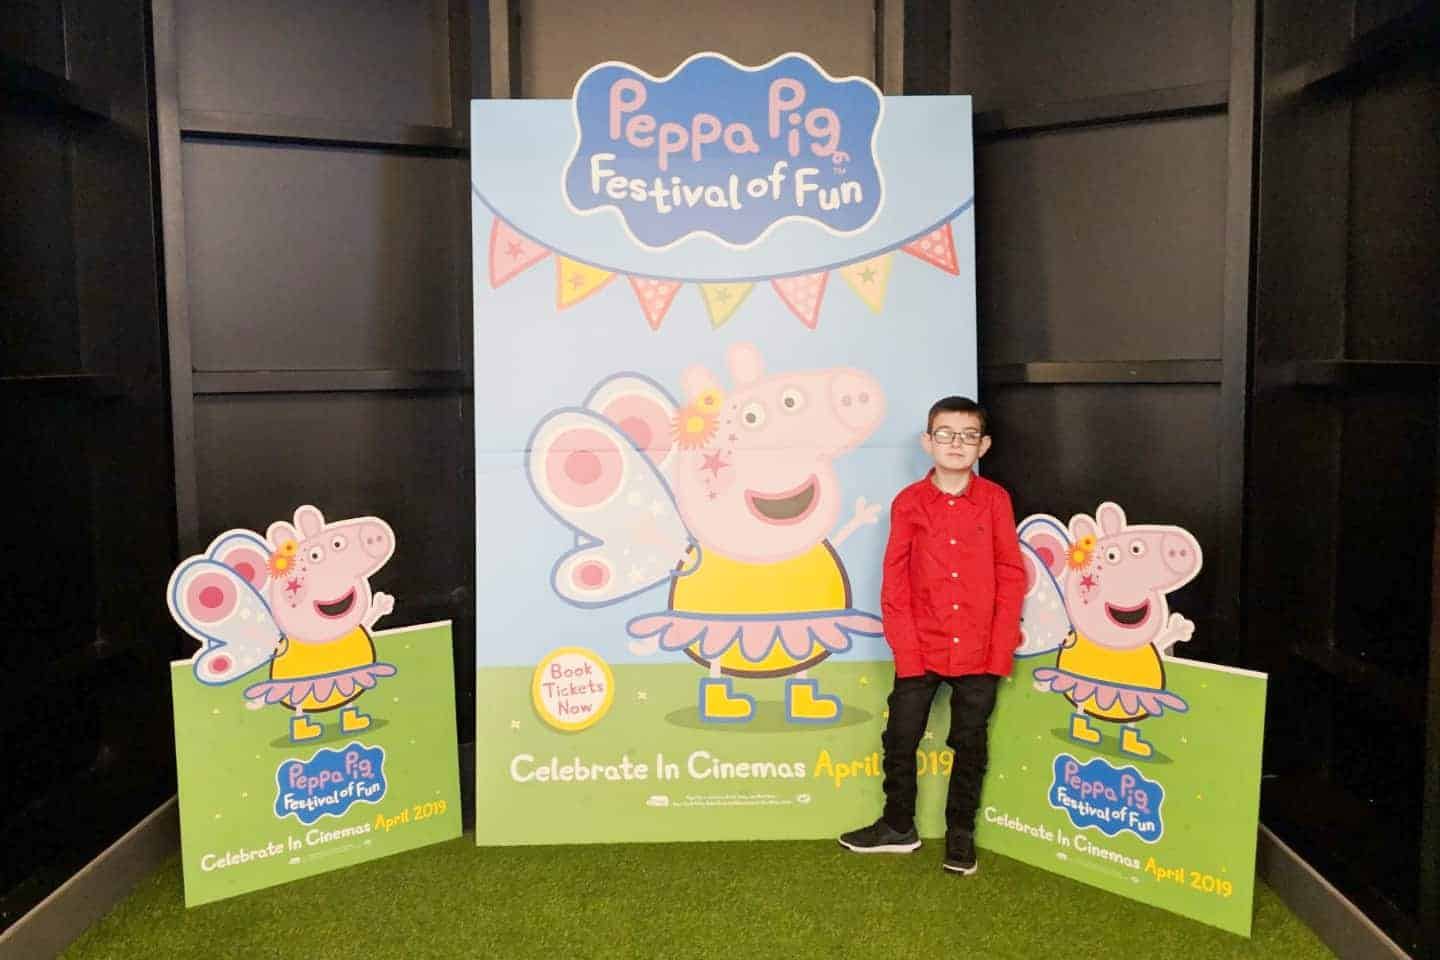 Peppa Pig Festival of Fun Screening [AD-GIFTED] + #Giveaway